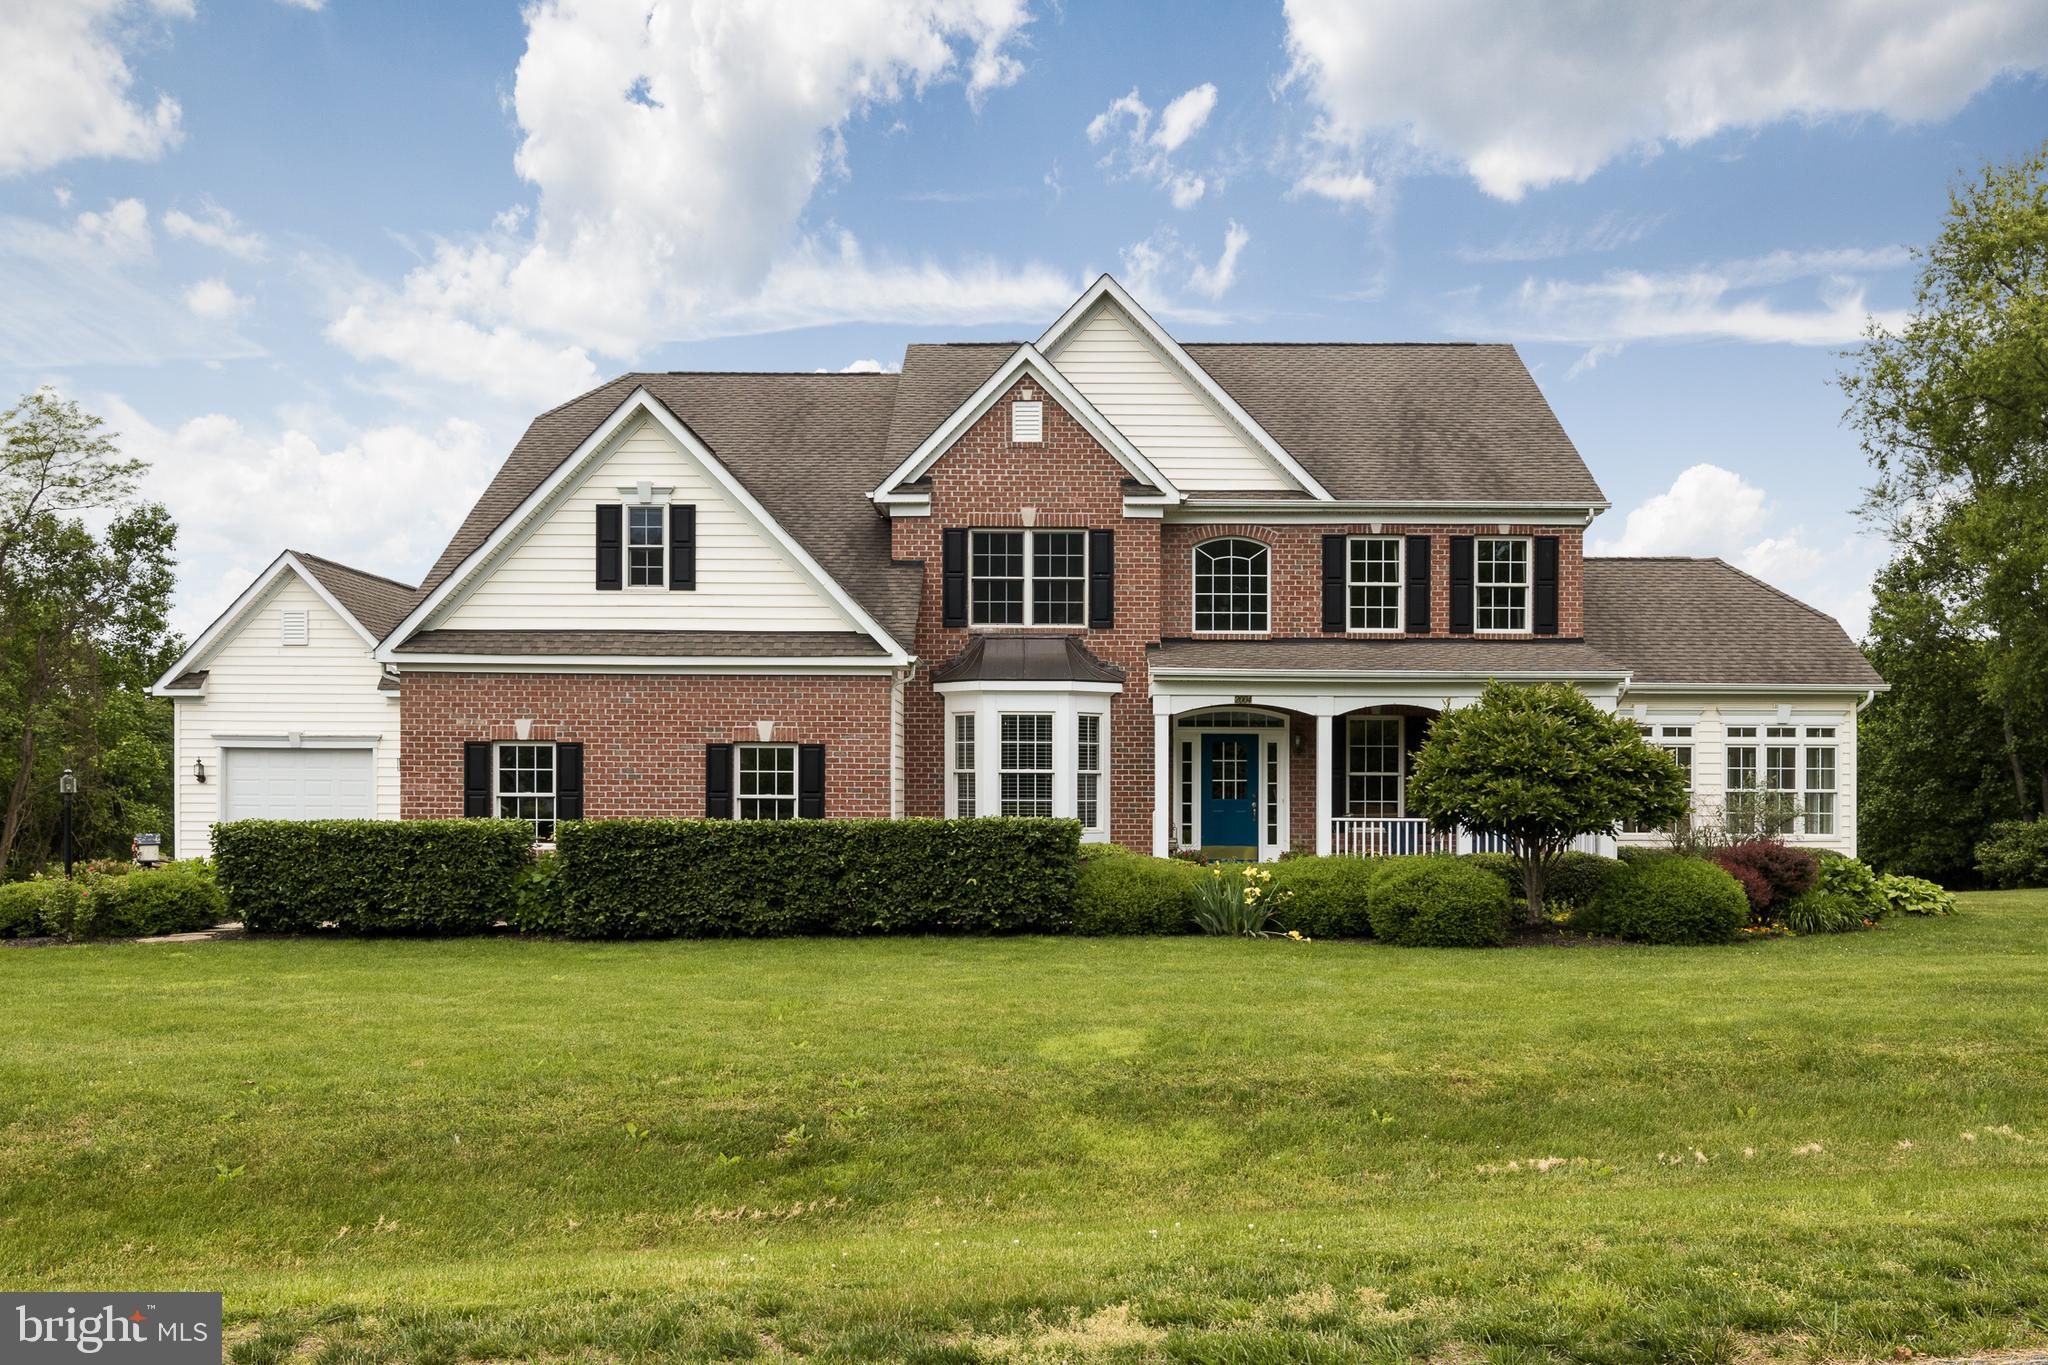 2004 TROUT FARM ROAD, JARRETTSVILLE, MD 21084